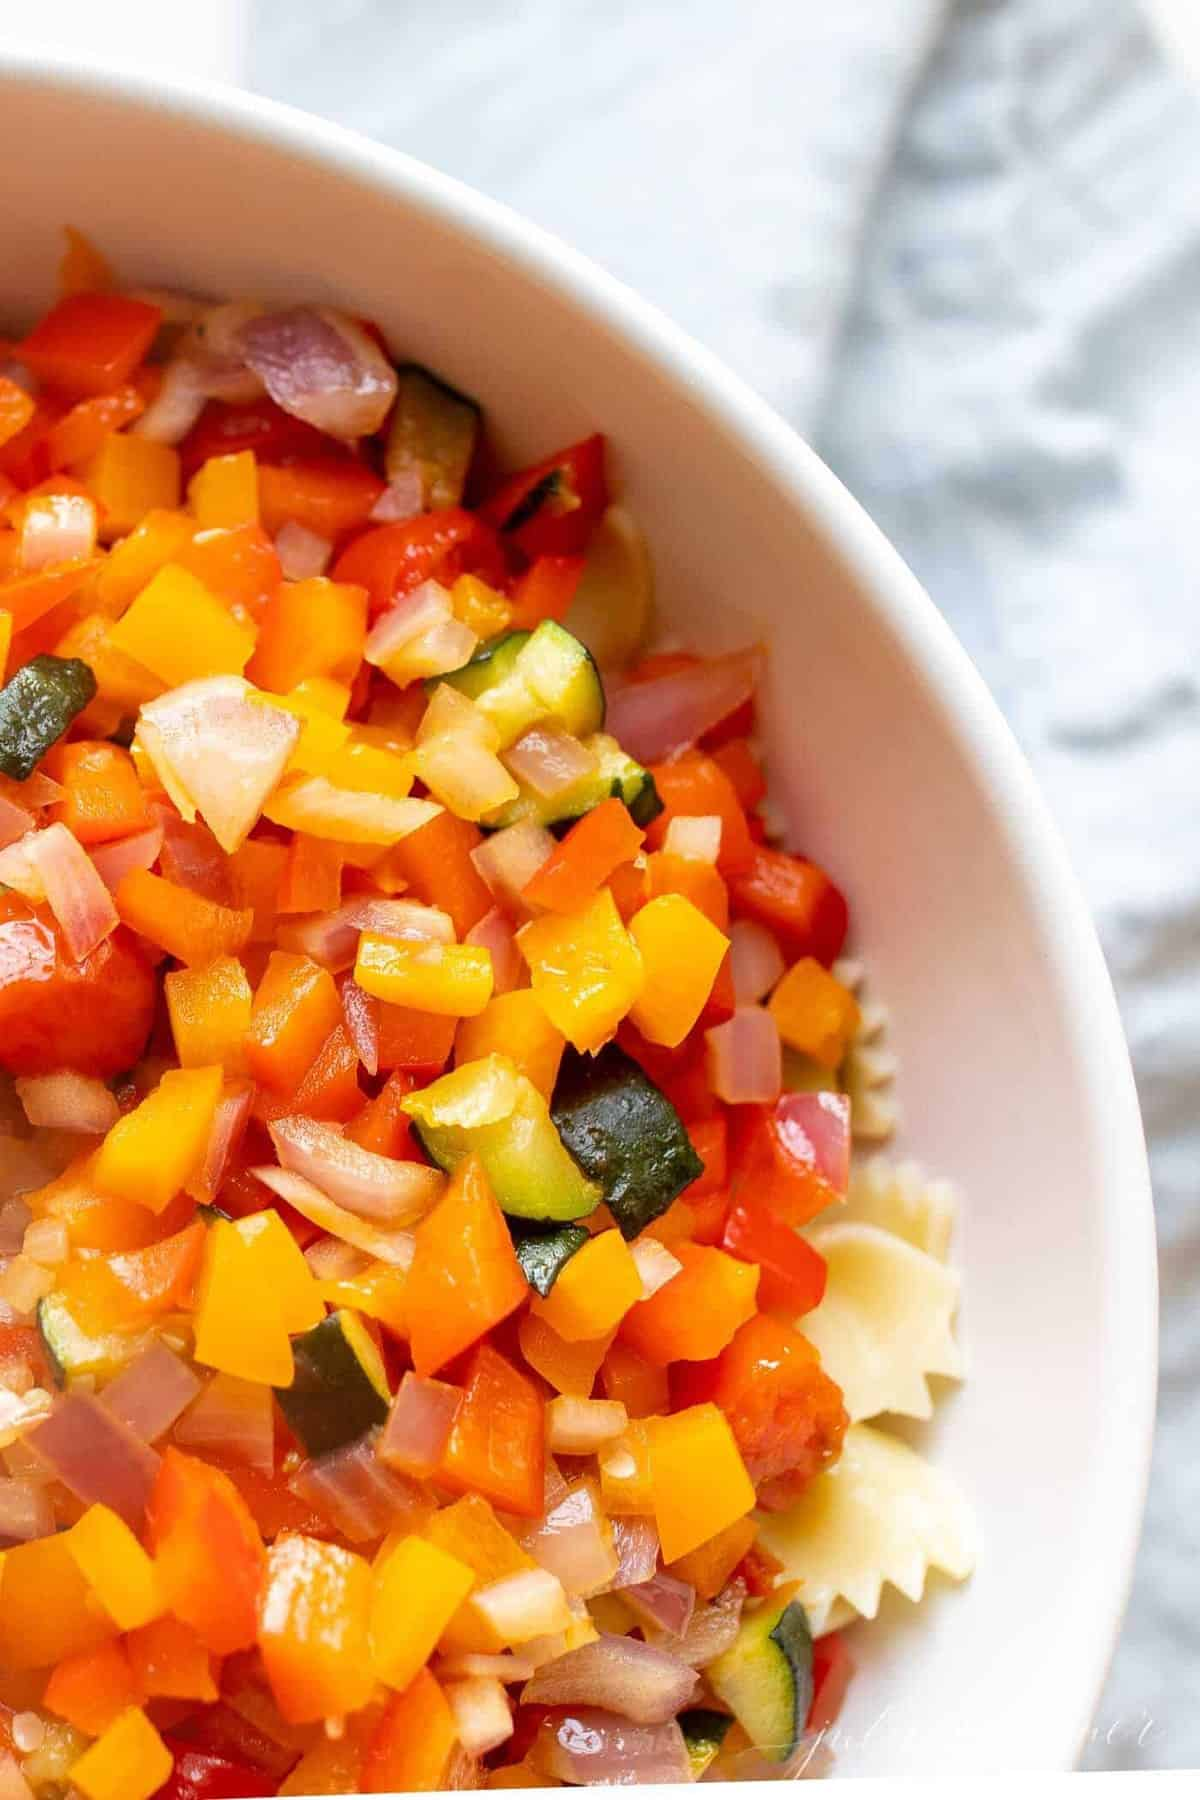 A white bowl filled with veggie pasta salad.